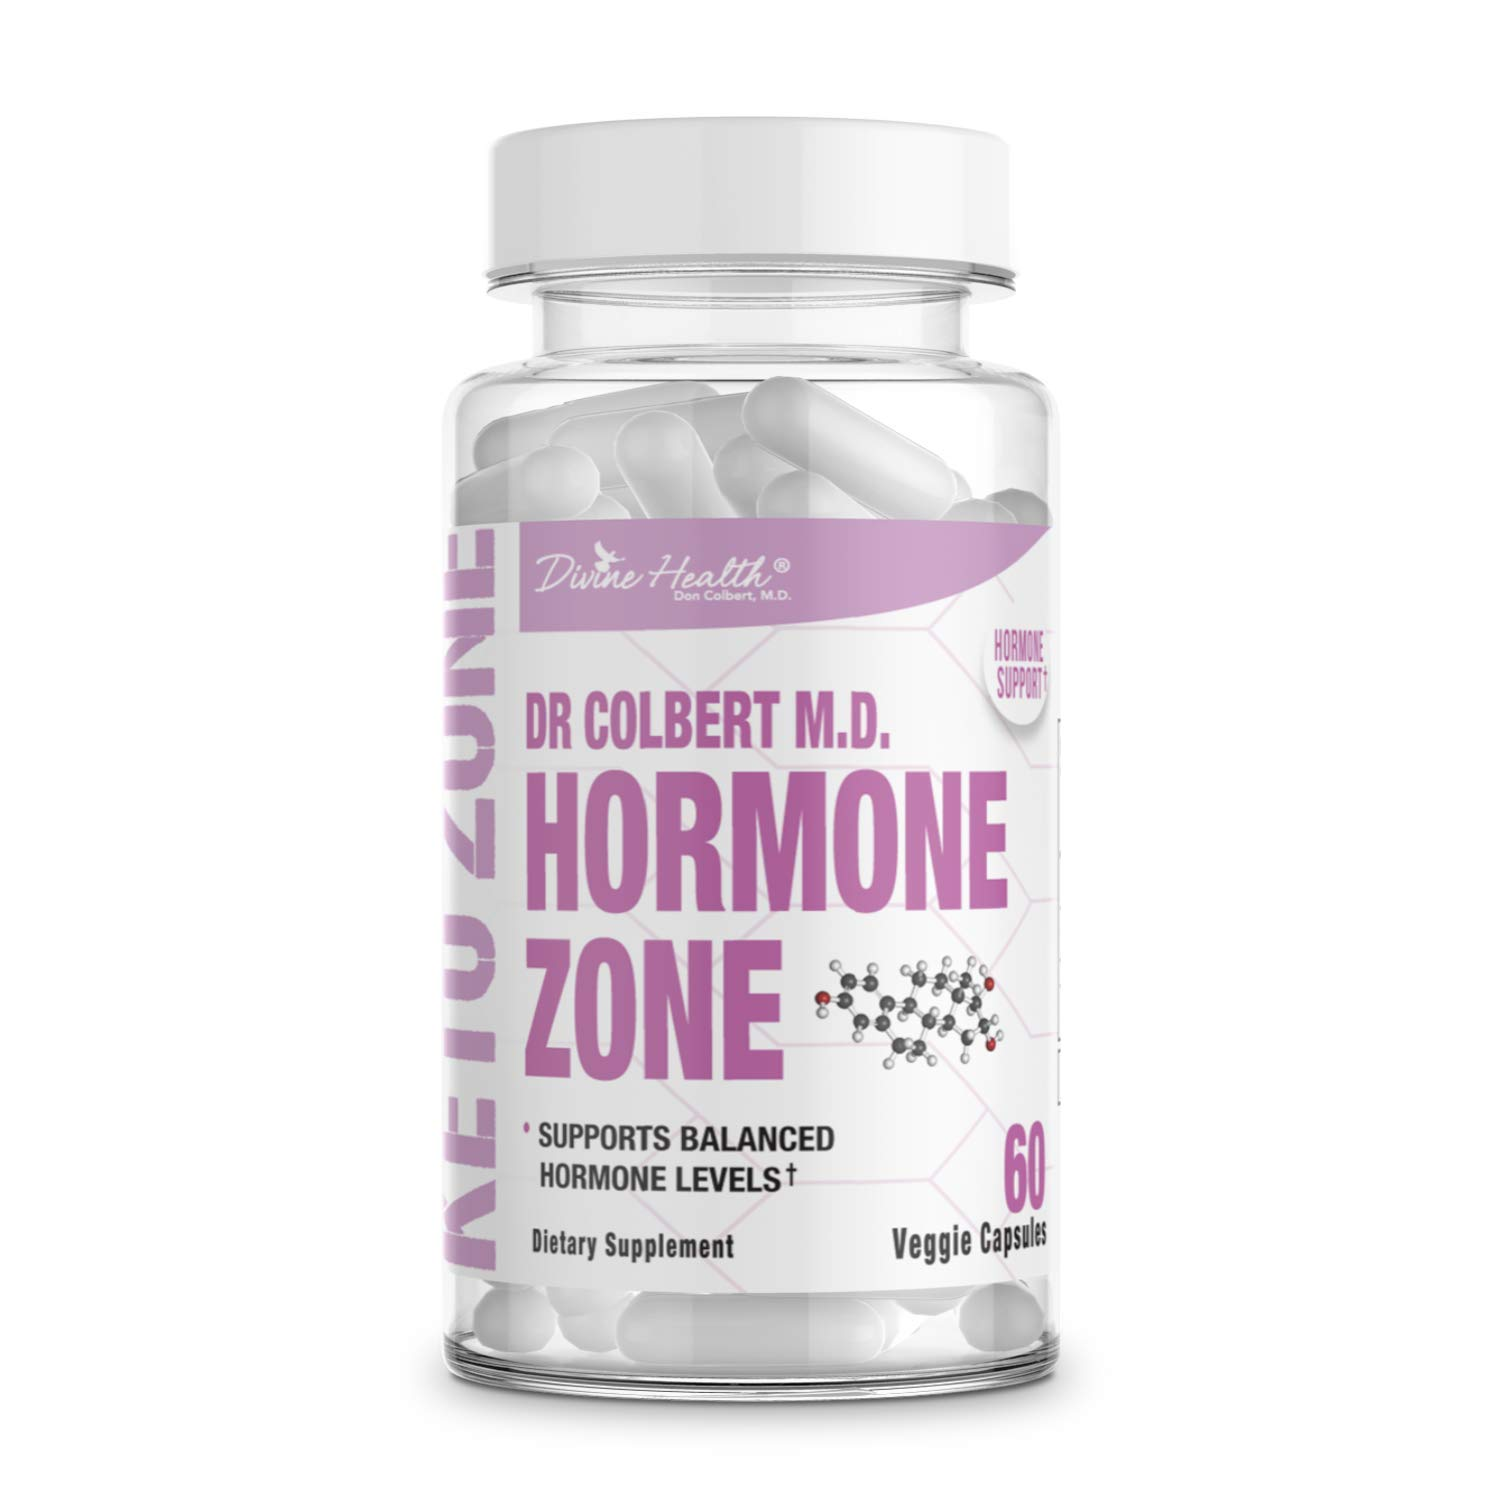 Divine Health Dr.Colbert's Hormone Zone for Health Hormone Levels Vitamins D3, K2 and Diindolylmethane (DIM)